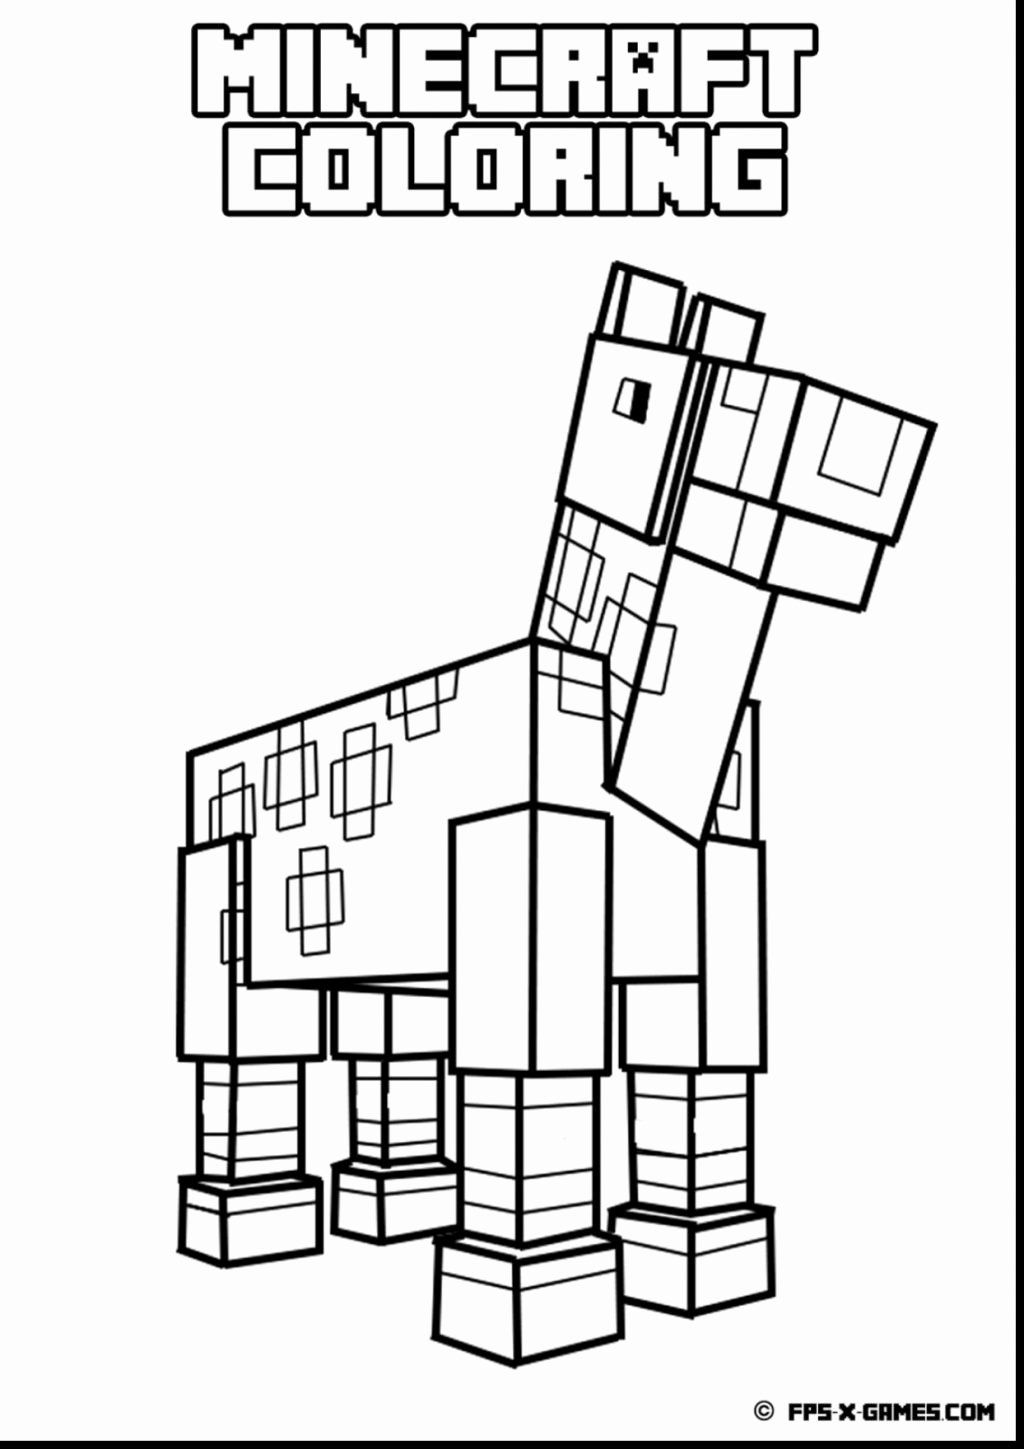 minecraft cake coloring pages drawing book for kids online beautiful coloring book minecraft pages cake coloring